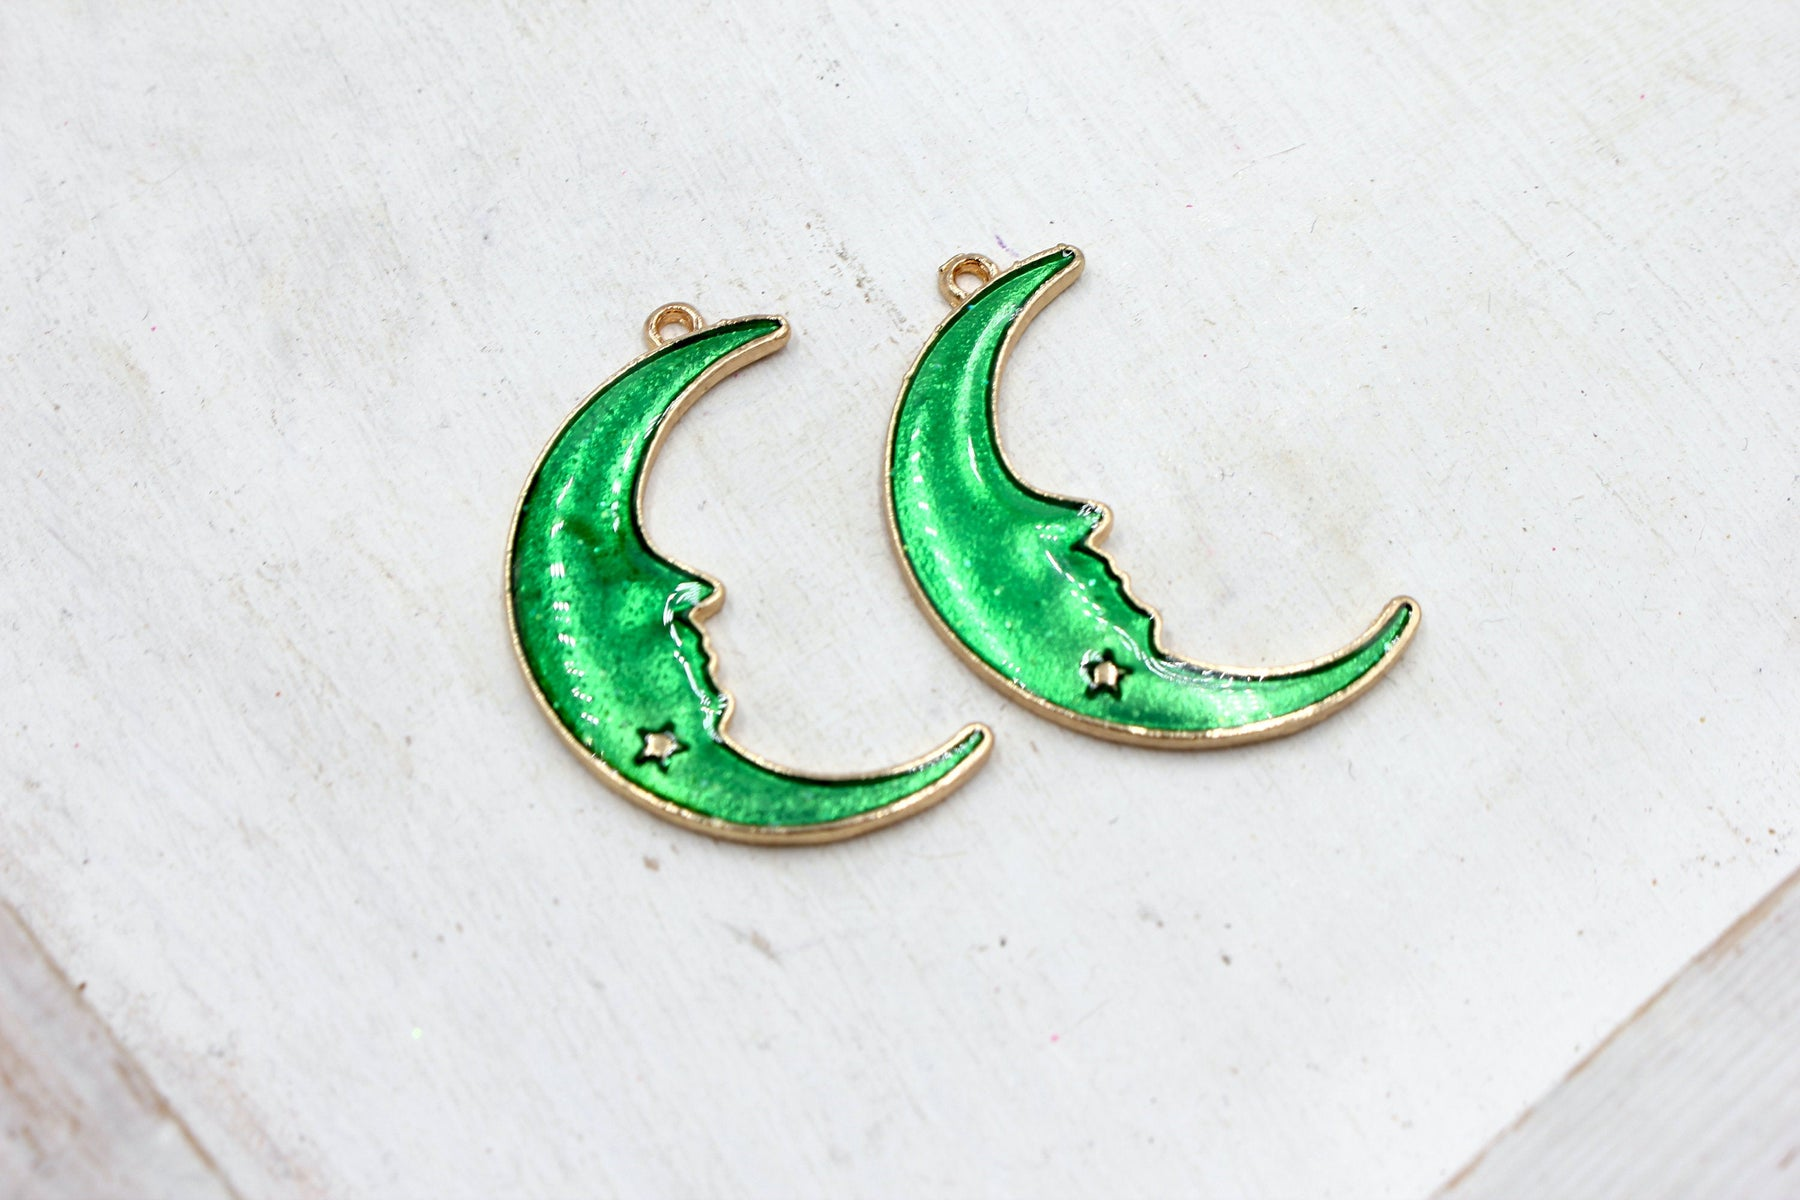 half moon, gold plated charm, moon charms, green enamel, mixed metal, 32mm x 20mm, hole 1.5mm, sold as 2 pieces.